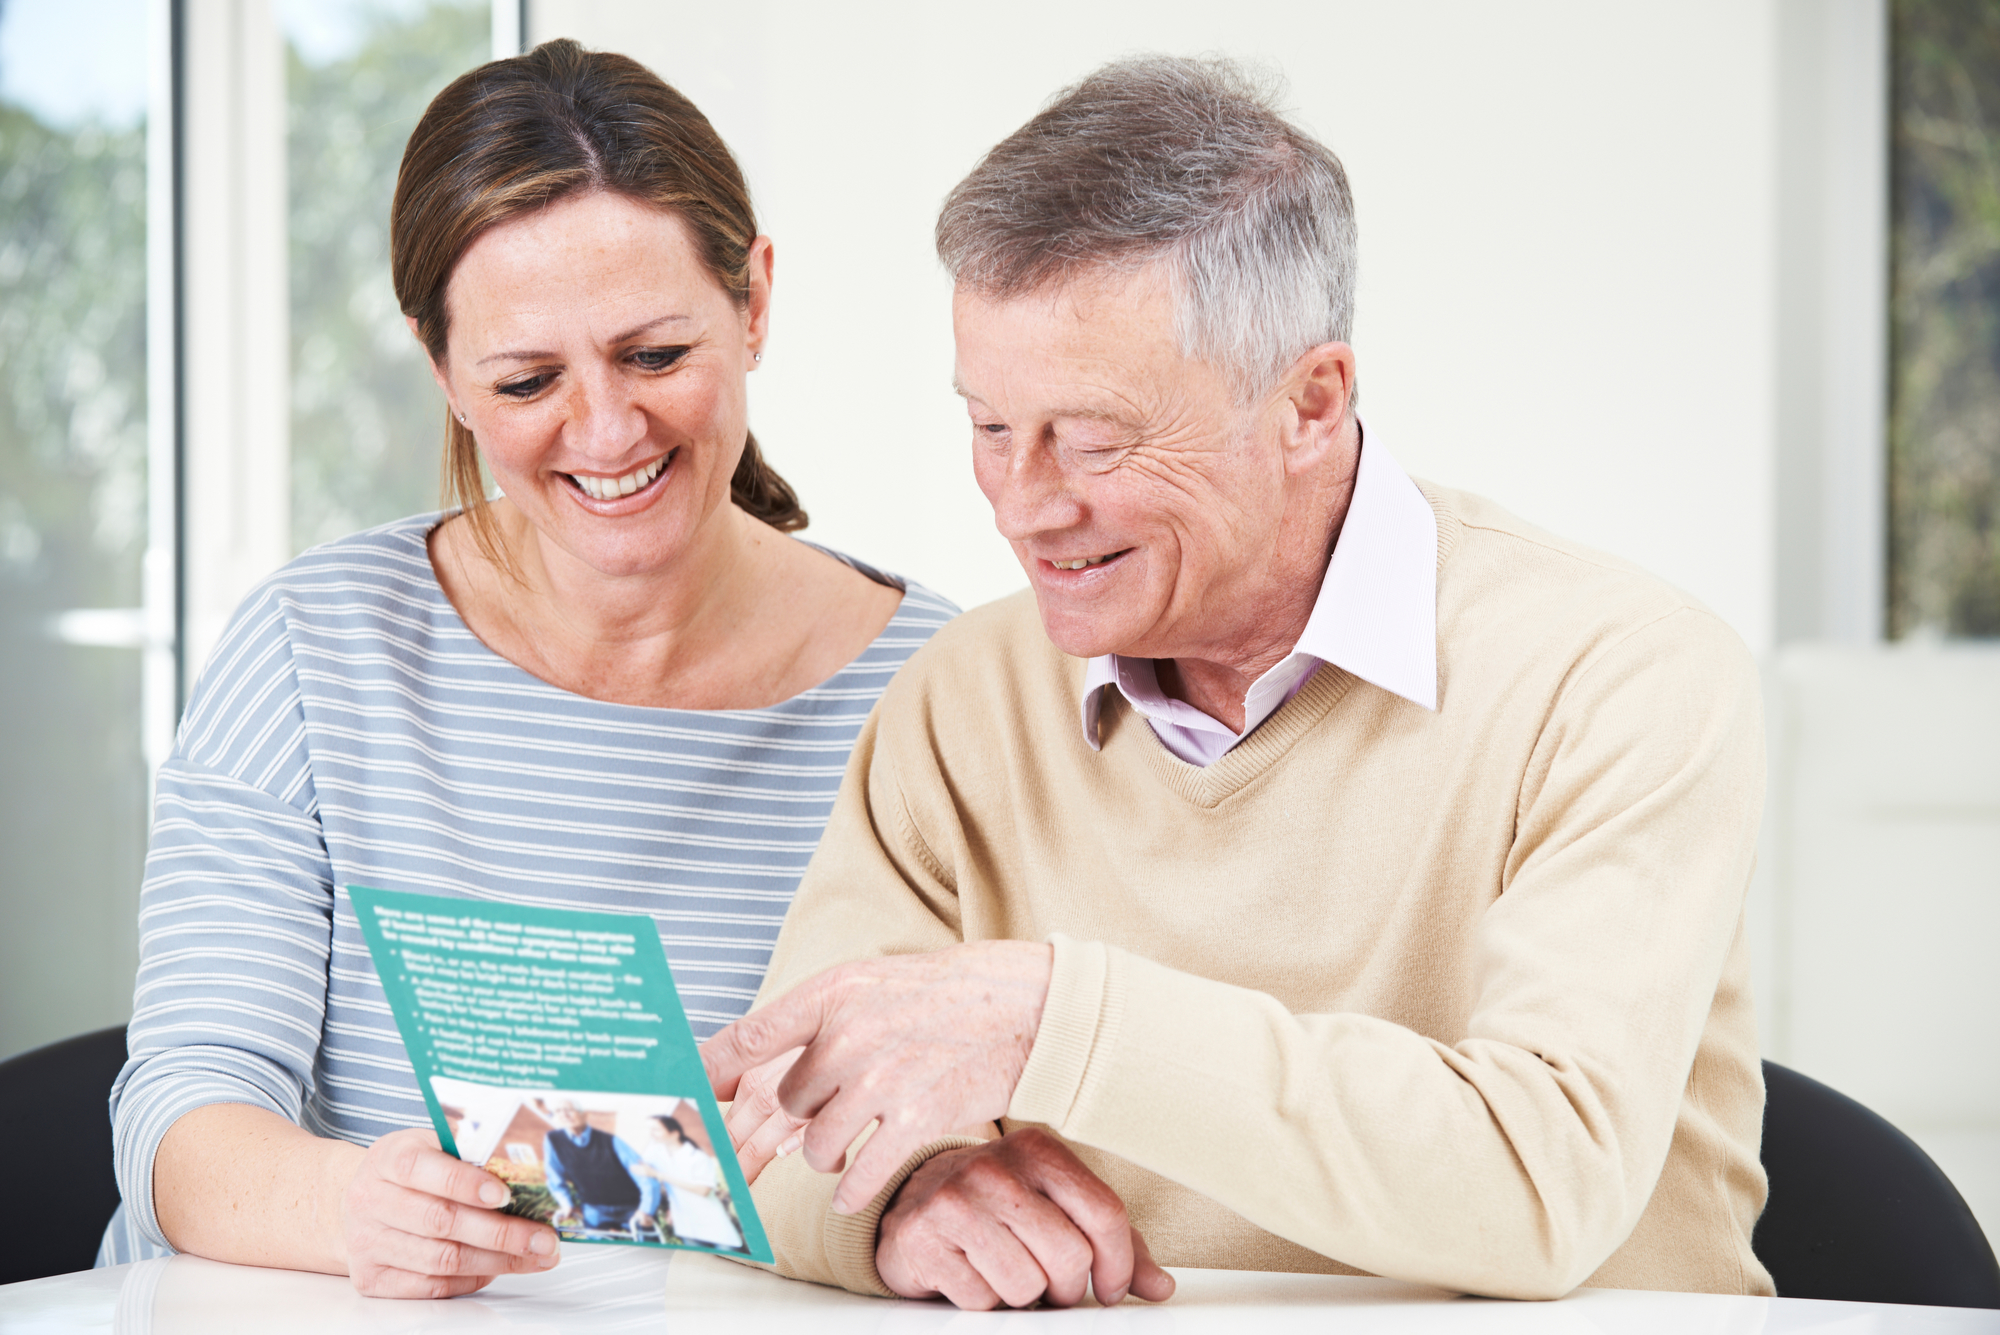 brethren senior personals Senior dating uk senior dating agency is an online dating site for senior dating uk singles senior dating agency reviews looking to find a  and his brethren,.